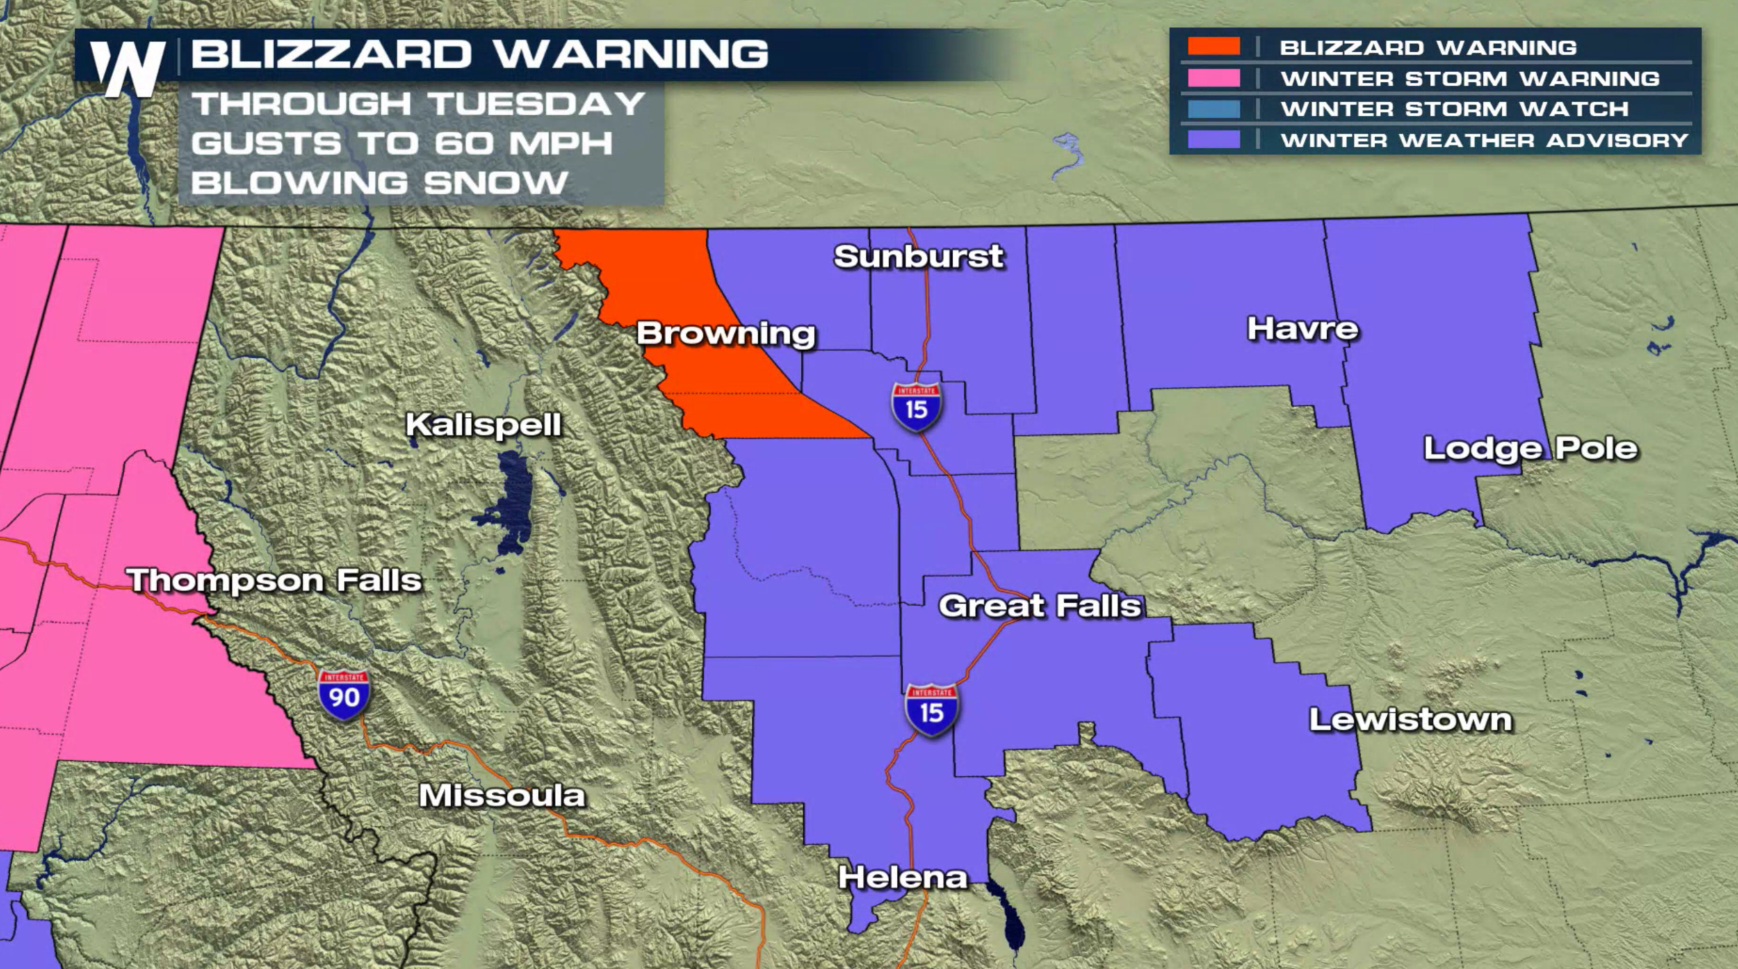 Blizzard Warnings in Montana with More Snow Ahead for the